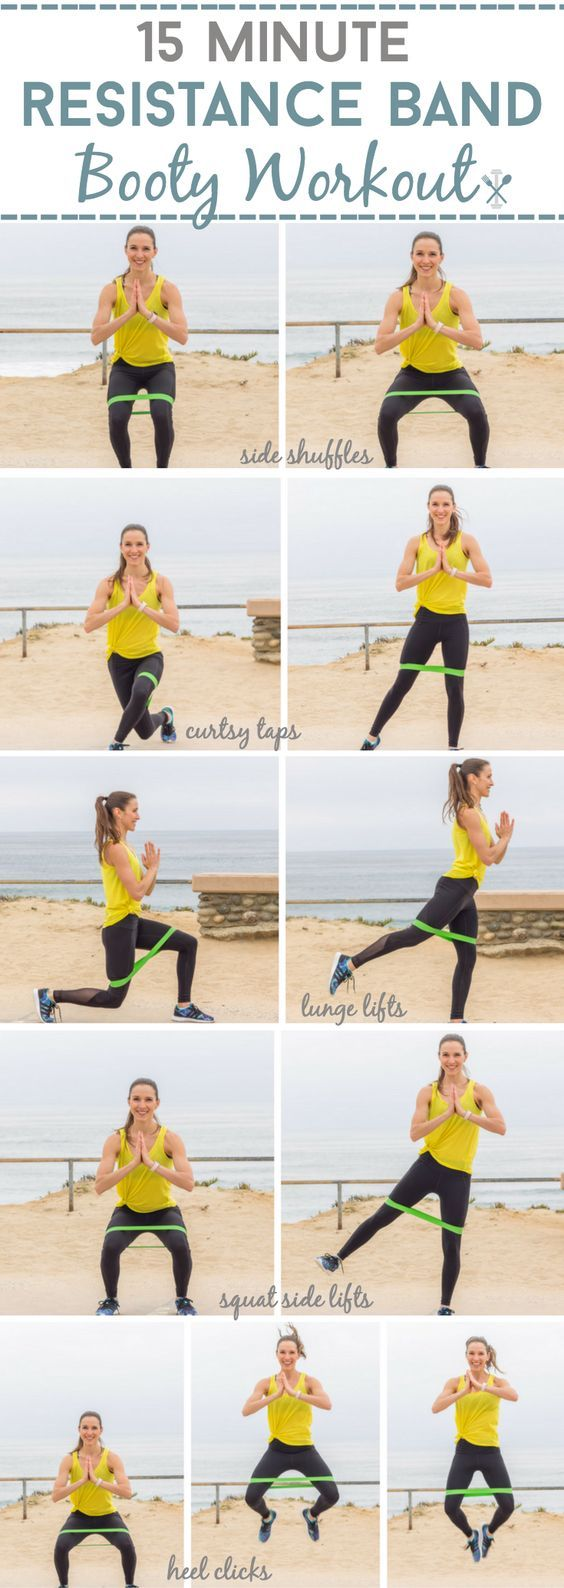 This target booty workout uses a resistance band for the ultimate backside shaper. Lift and tone your booty with this 15 minute, at home workout